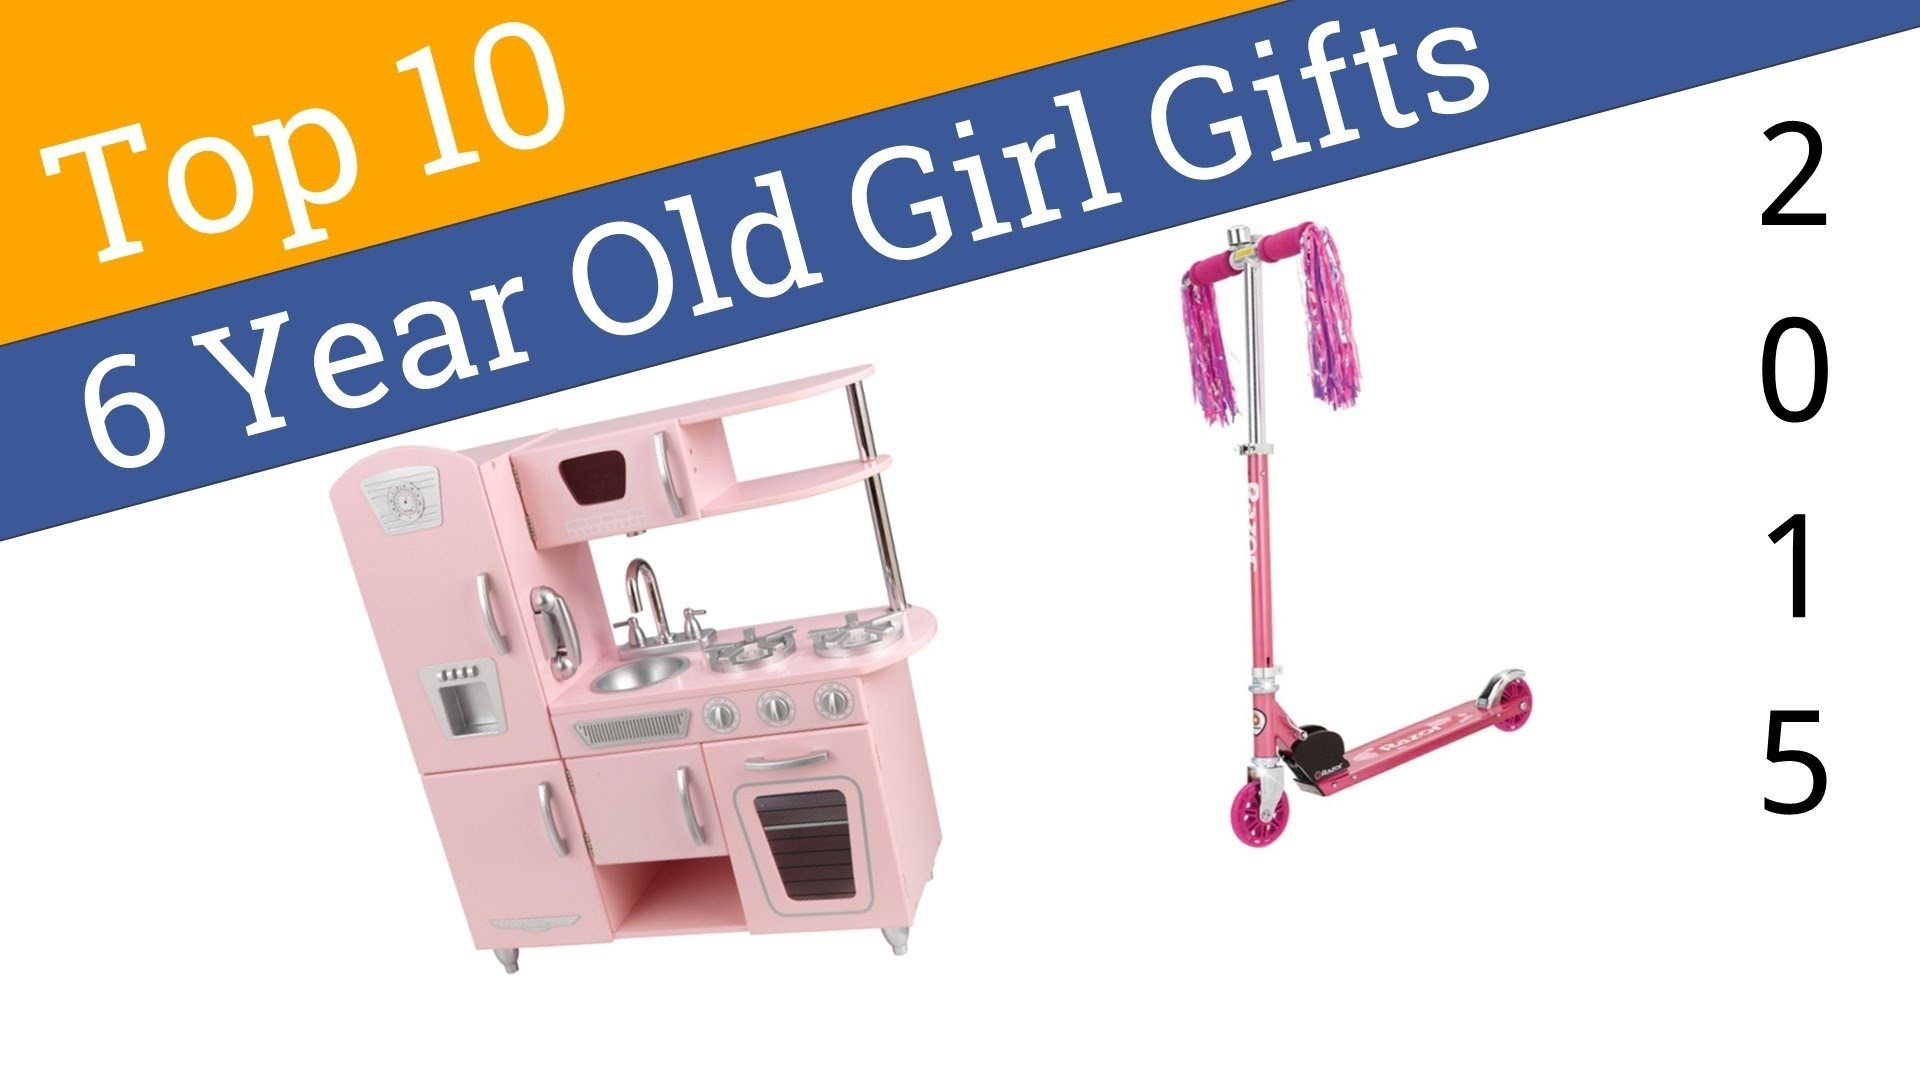 10 Lovely Gift Ideas For 6 Year Old Girl themes birthday 6 yr old girl birthday gift ideas plus zoob car 1 2021